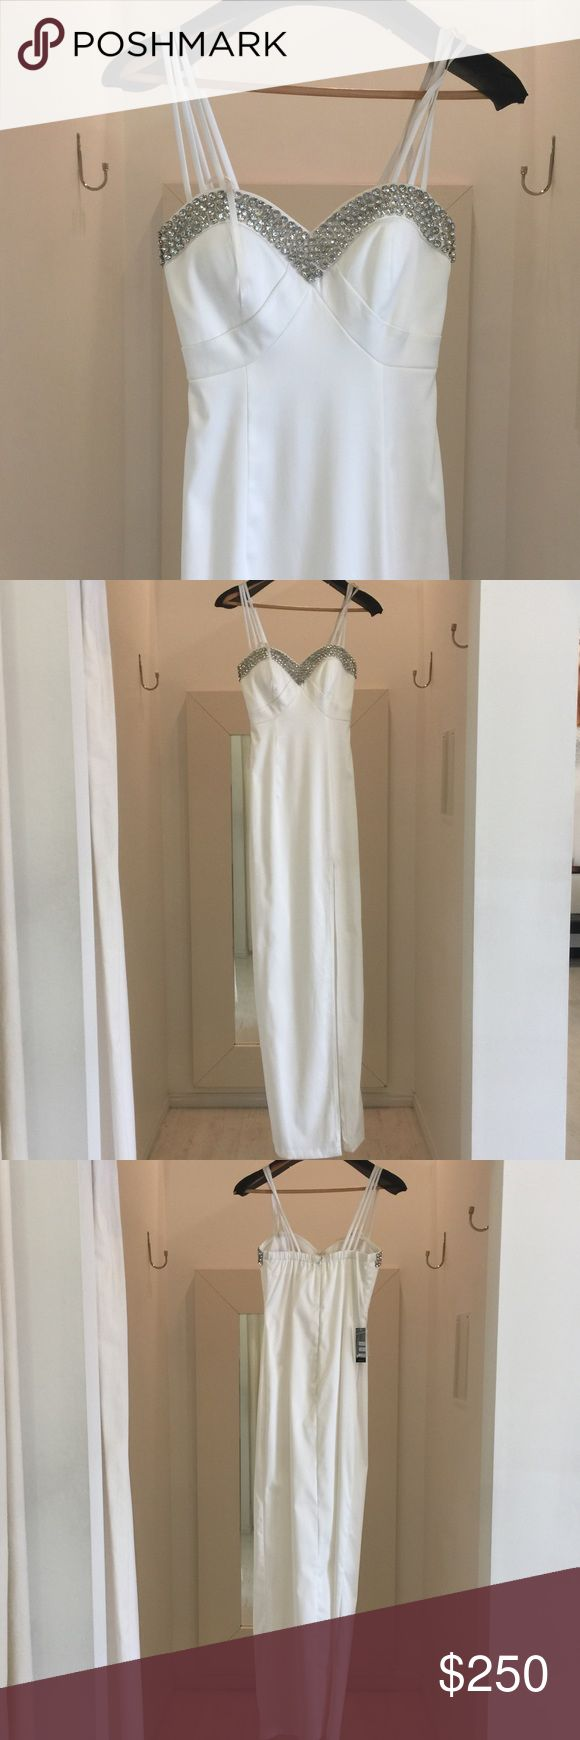 NWT- Faviana Gown Beautiful for prom, pageant or weddings!  We own a prom and pageant store, so if you're looking for something specific let me know!  Please check out my other listings- many brands and styles!  Selling at wholesale price to clear out inventory!  :) Faviana Dresses Wedding